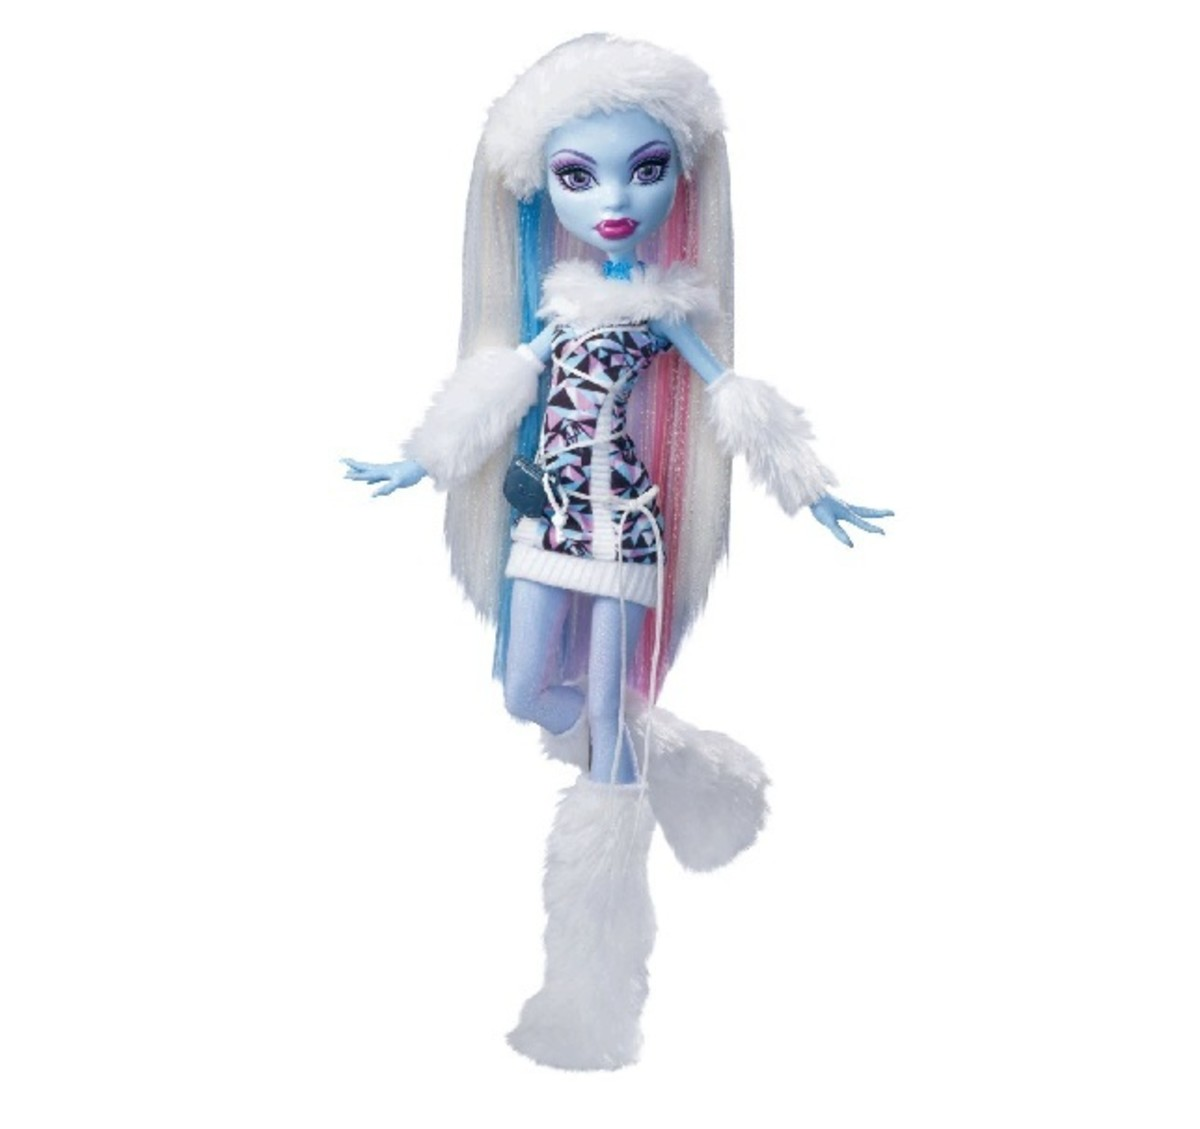 Abbey Bominable Dolls From Monster High - List Of Dolls